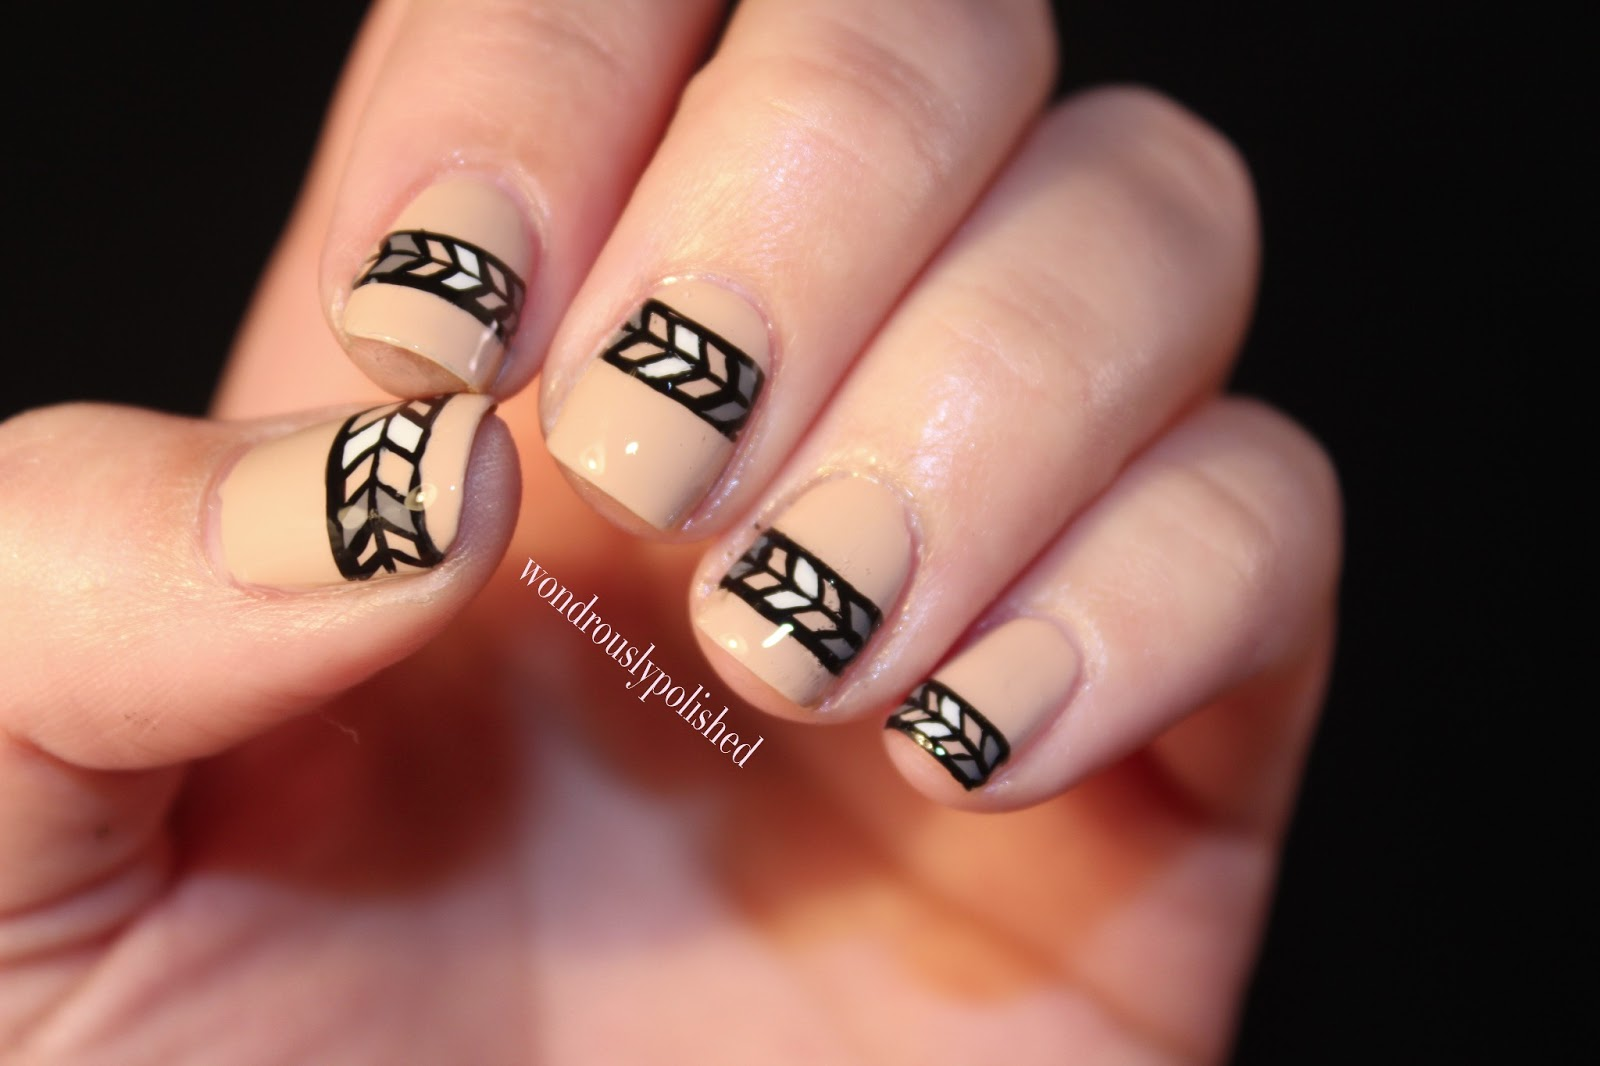 Nails Art: Wondrously Polished: Simple Tribal Print & Zoya's Avery